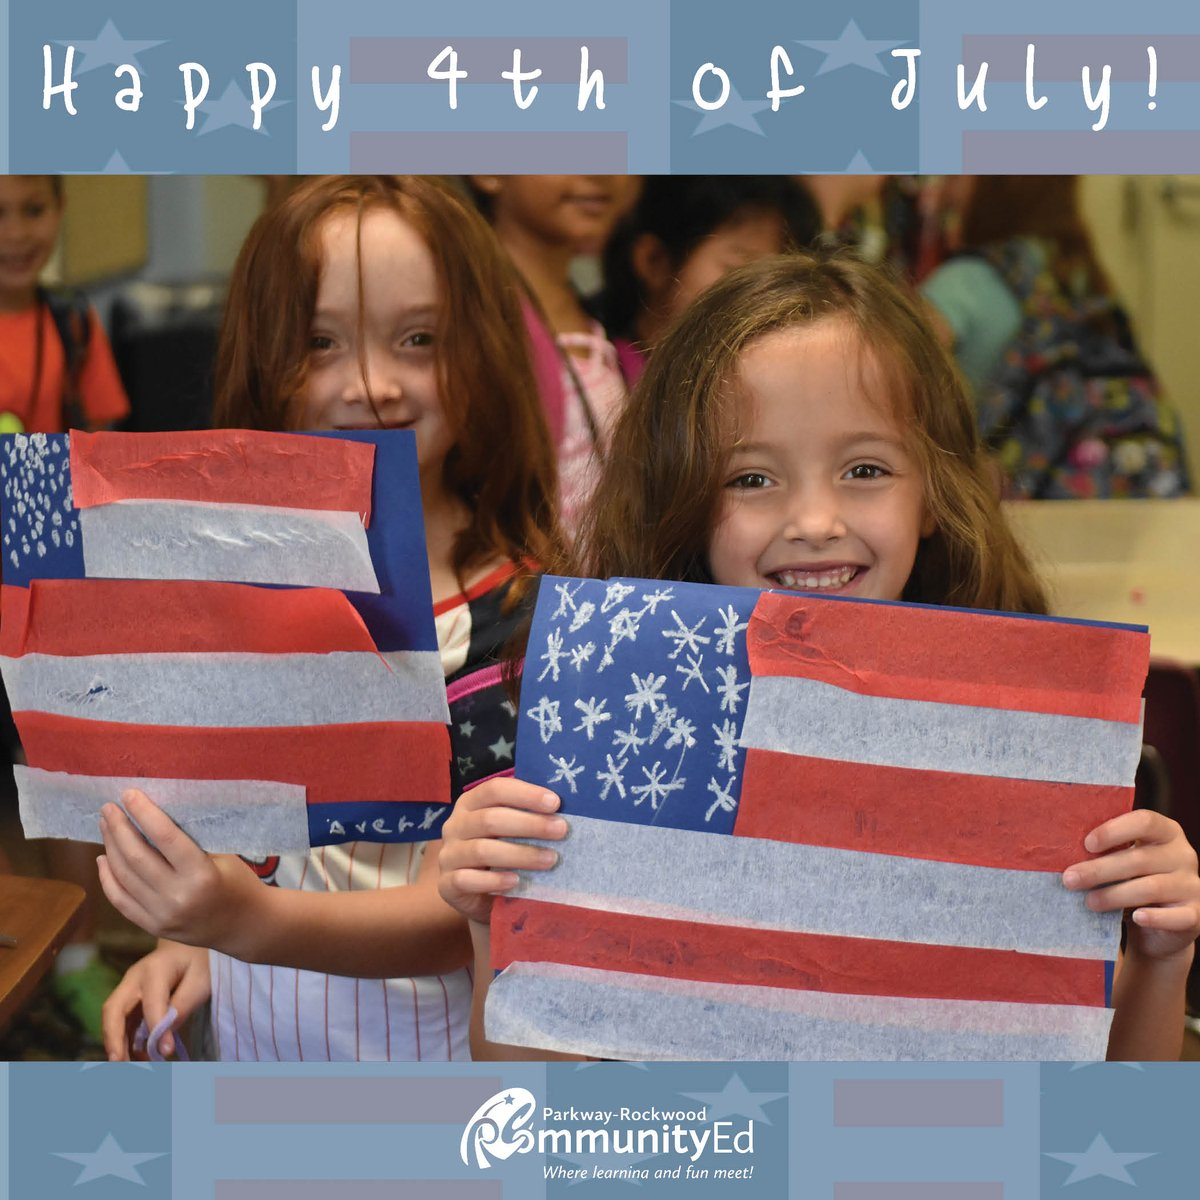 Have a fun and safe holiday! We're looking forward to more fun the rest of the Summer! #4thofjuly